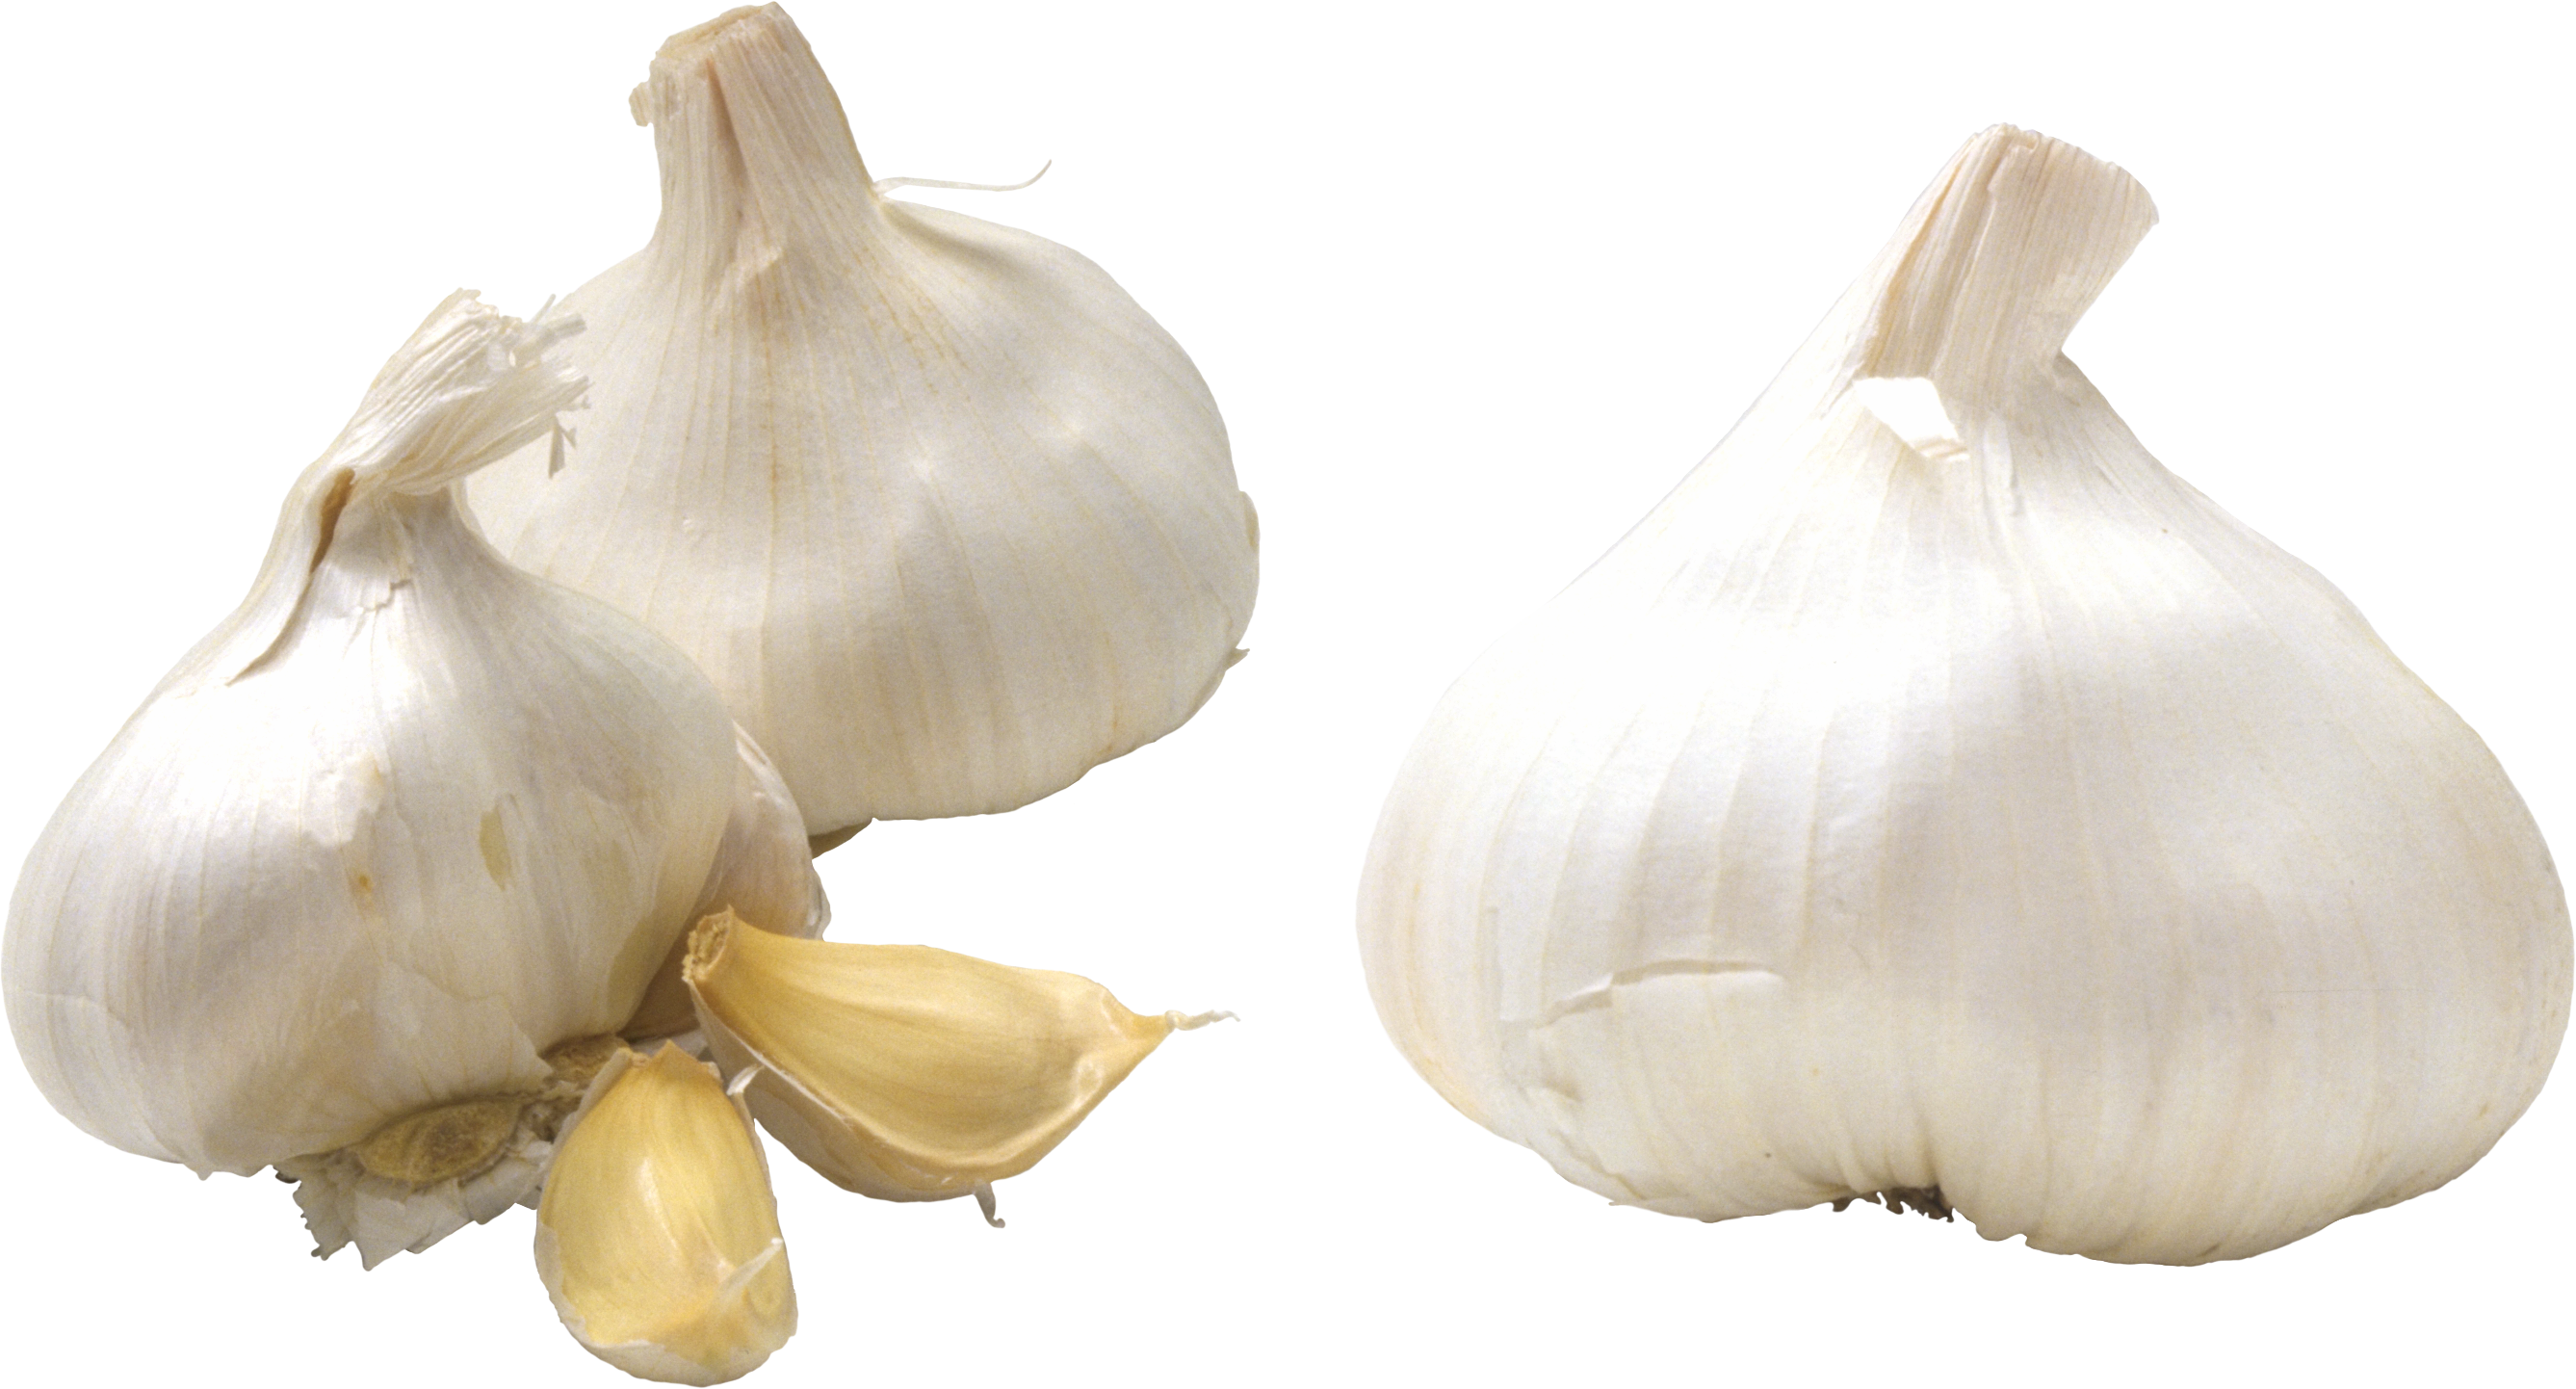 garlic png images for download crazypngm #25532